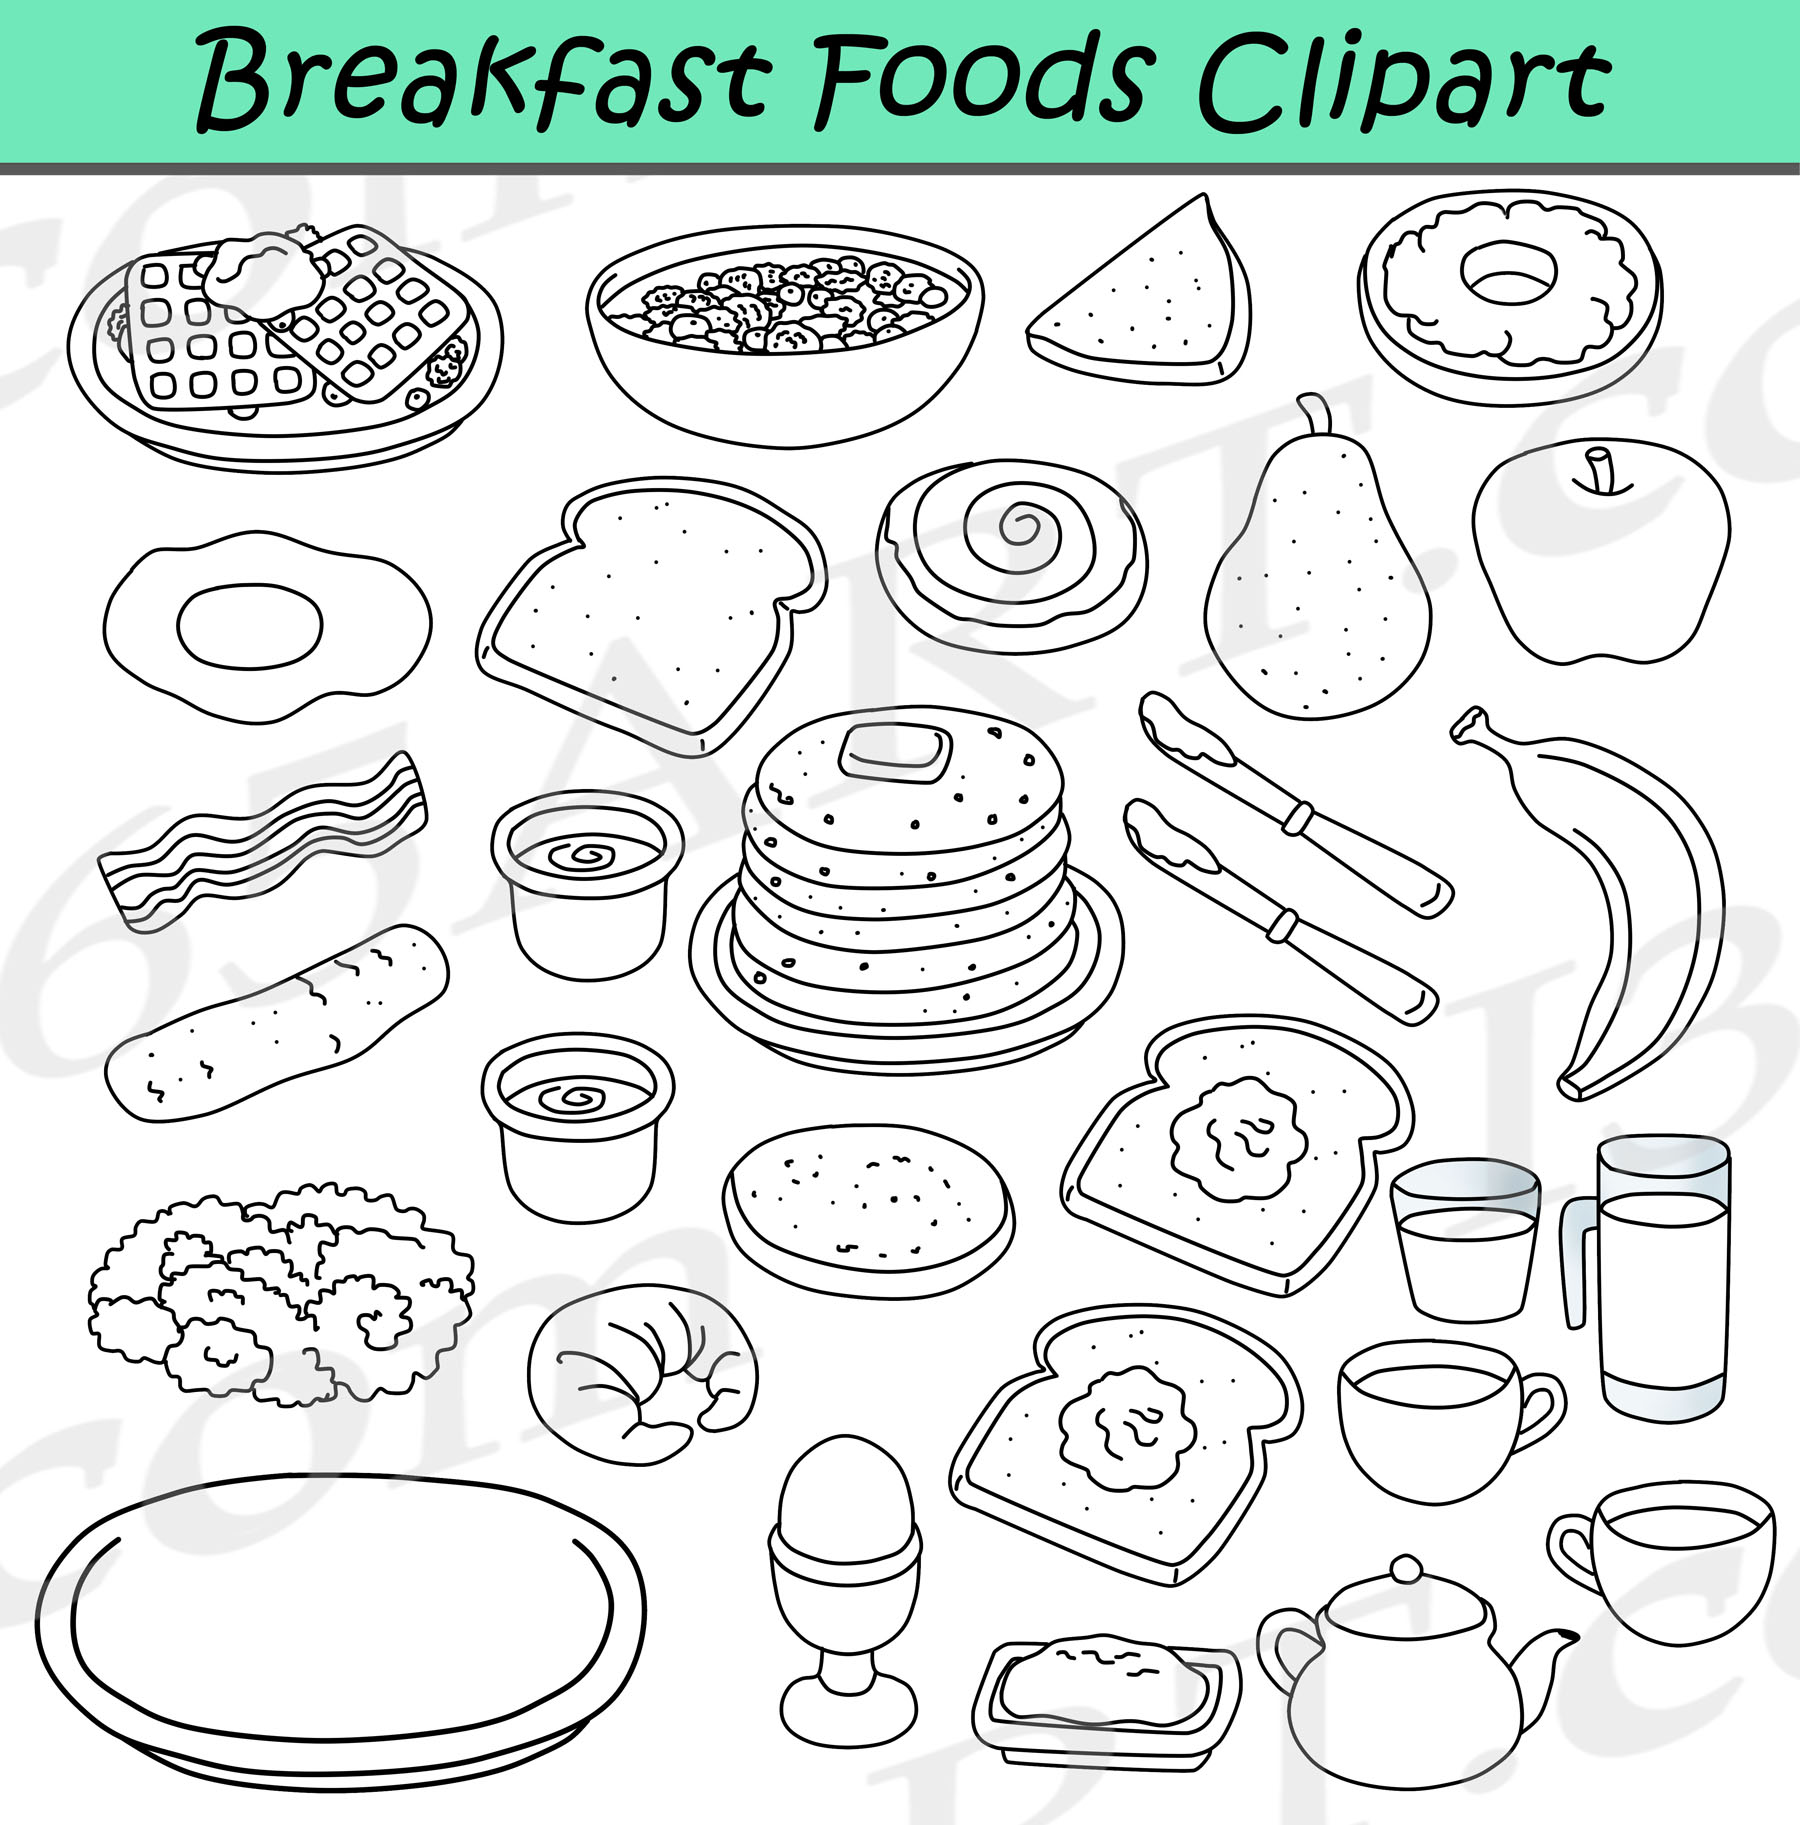 Breakfast teach clipart png free library Breakfast Foods Clipart Bundle - Breakfast Clipart Graphics png free library